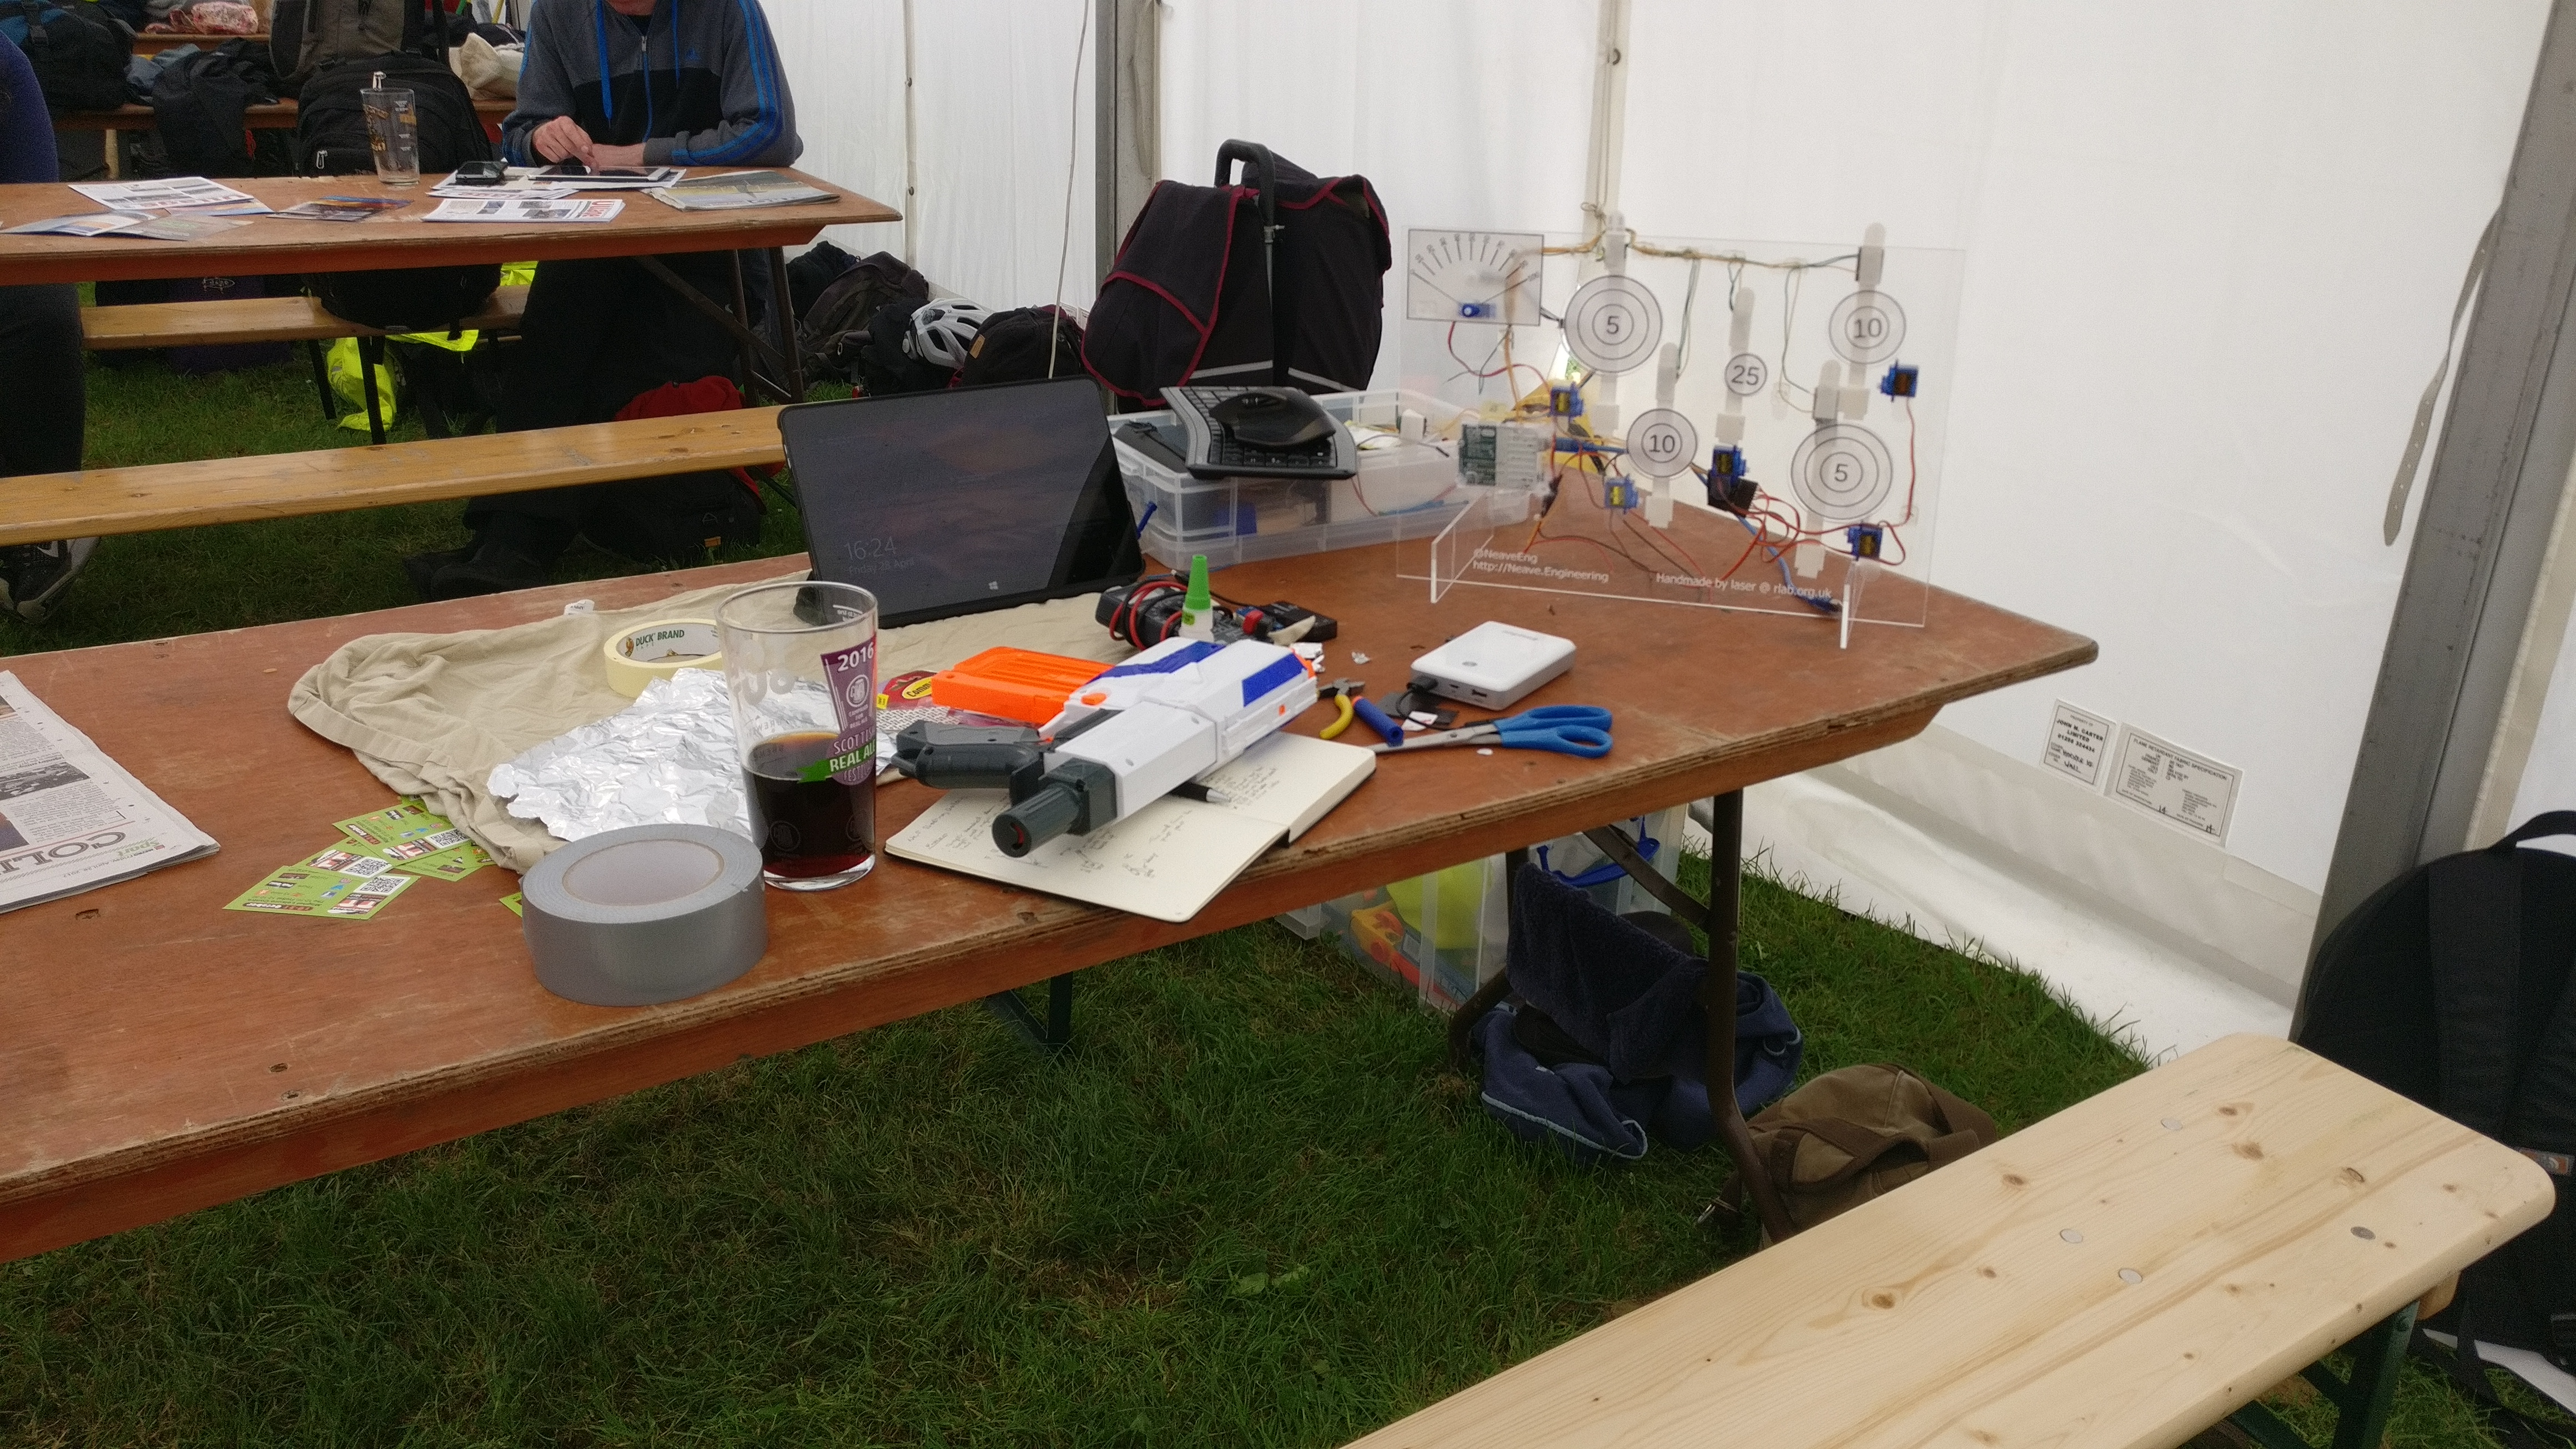 My workstation in the staff tent at the Beer Festival